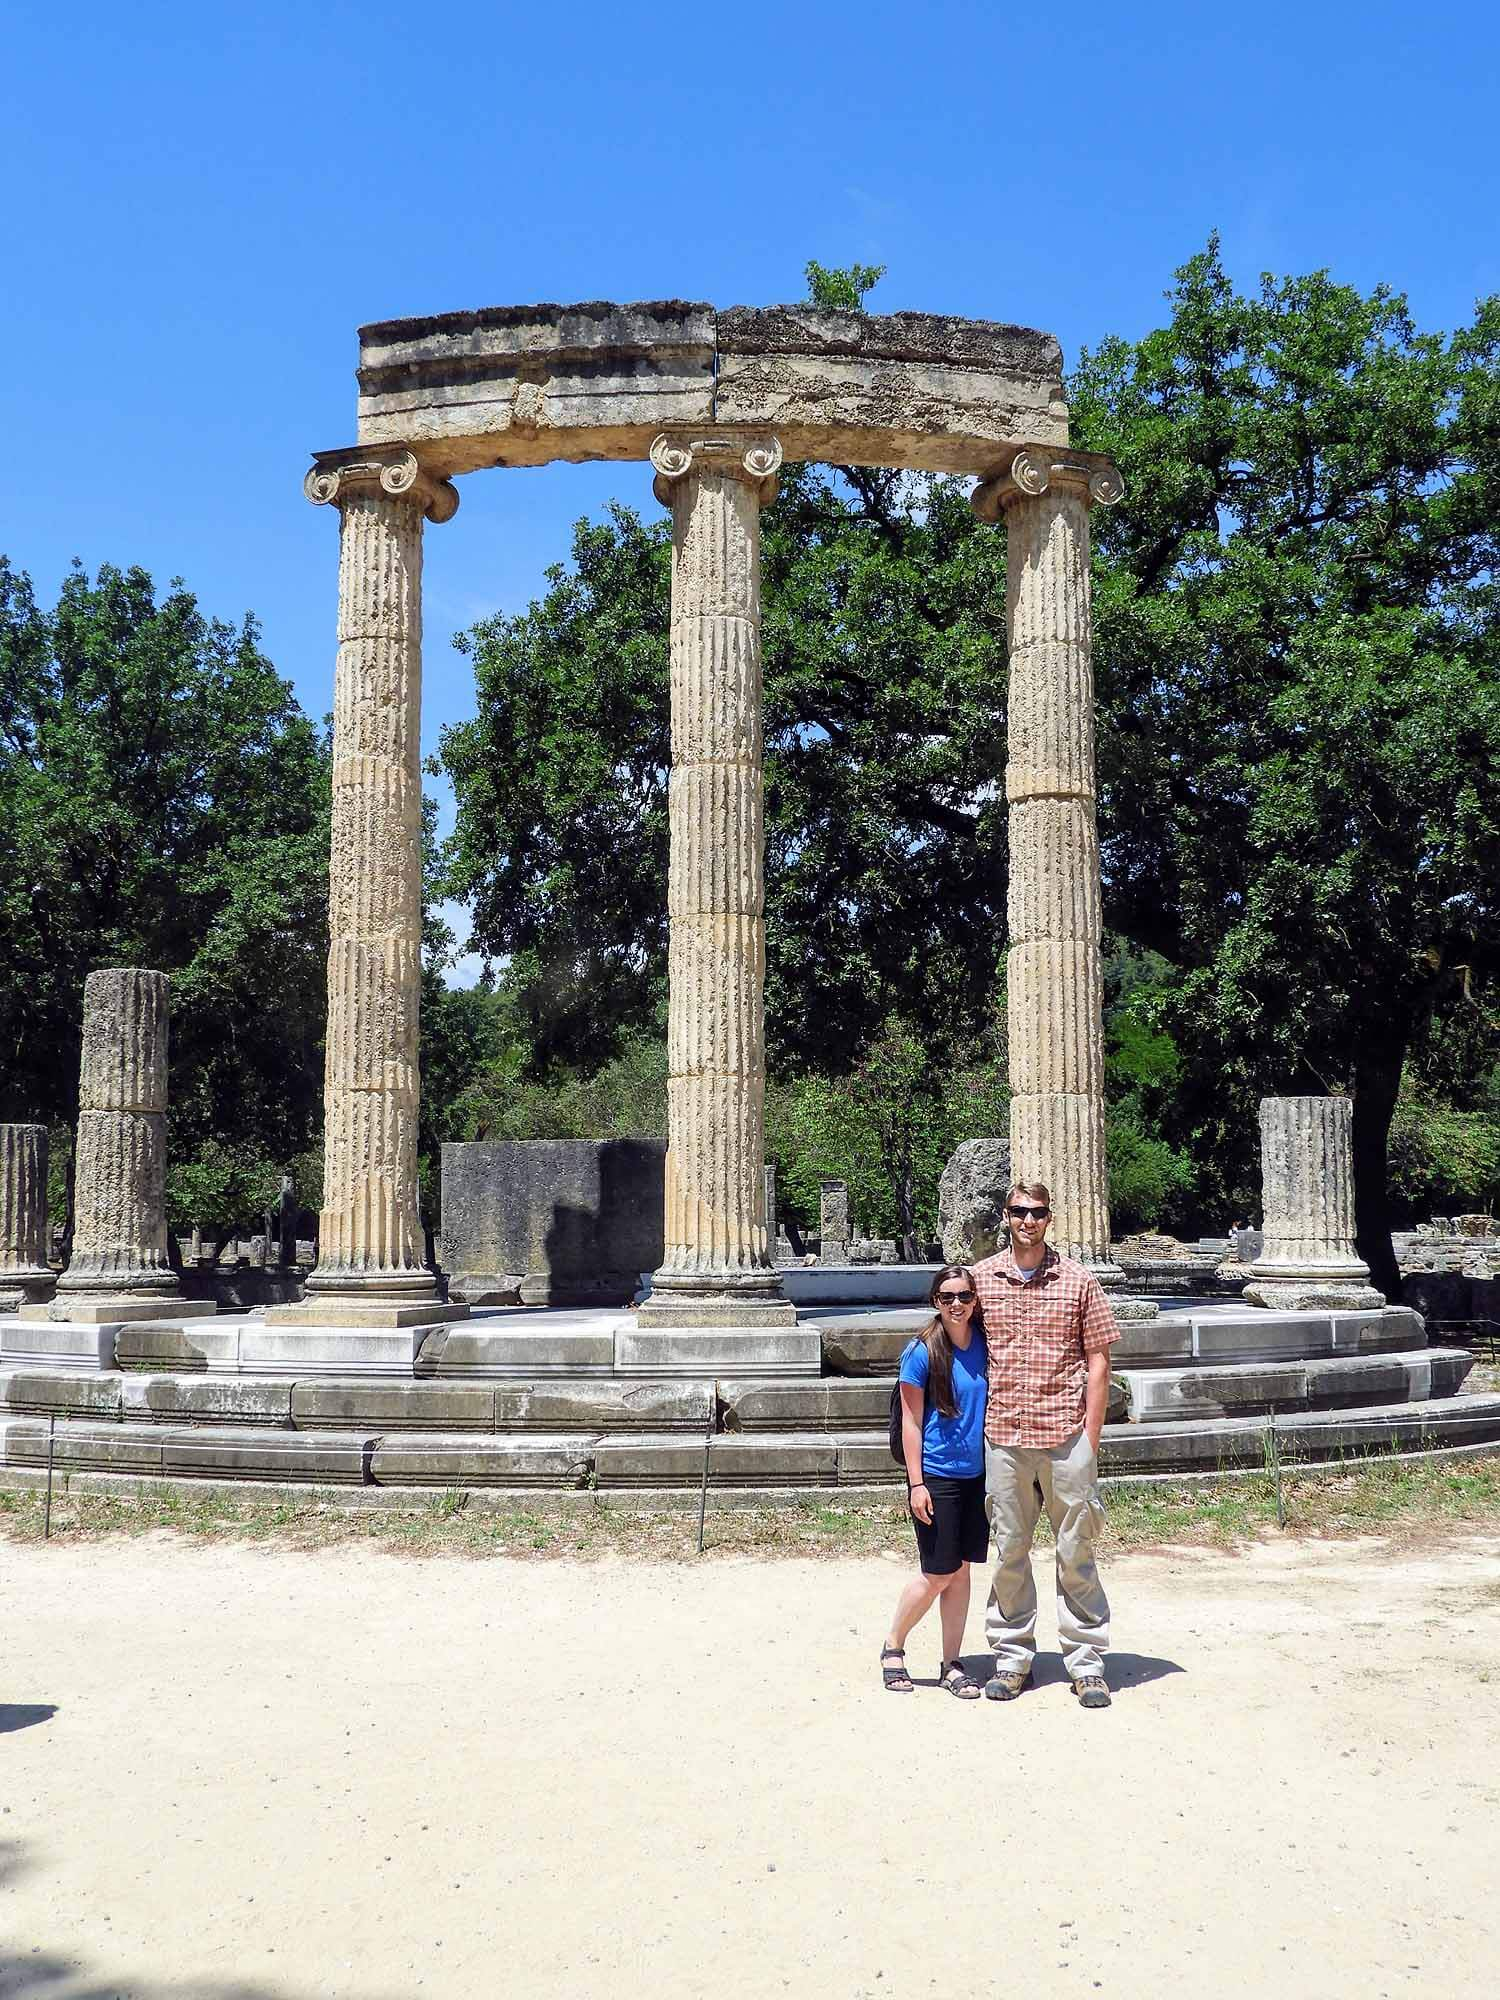 greece-olympia-ruins-olympic-columns-team.jpg